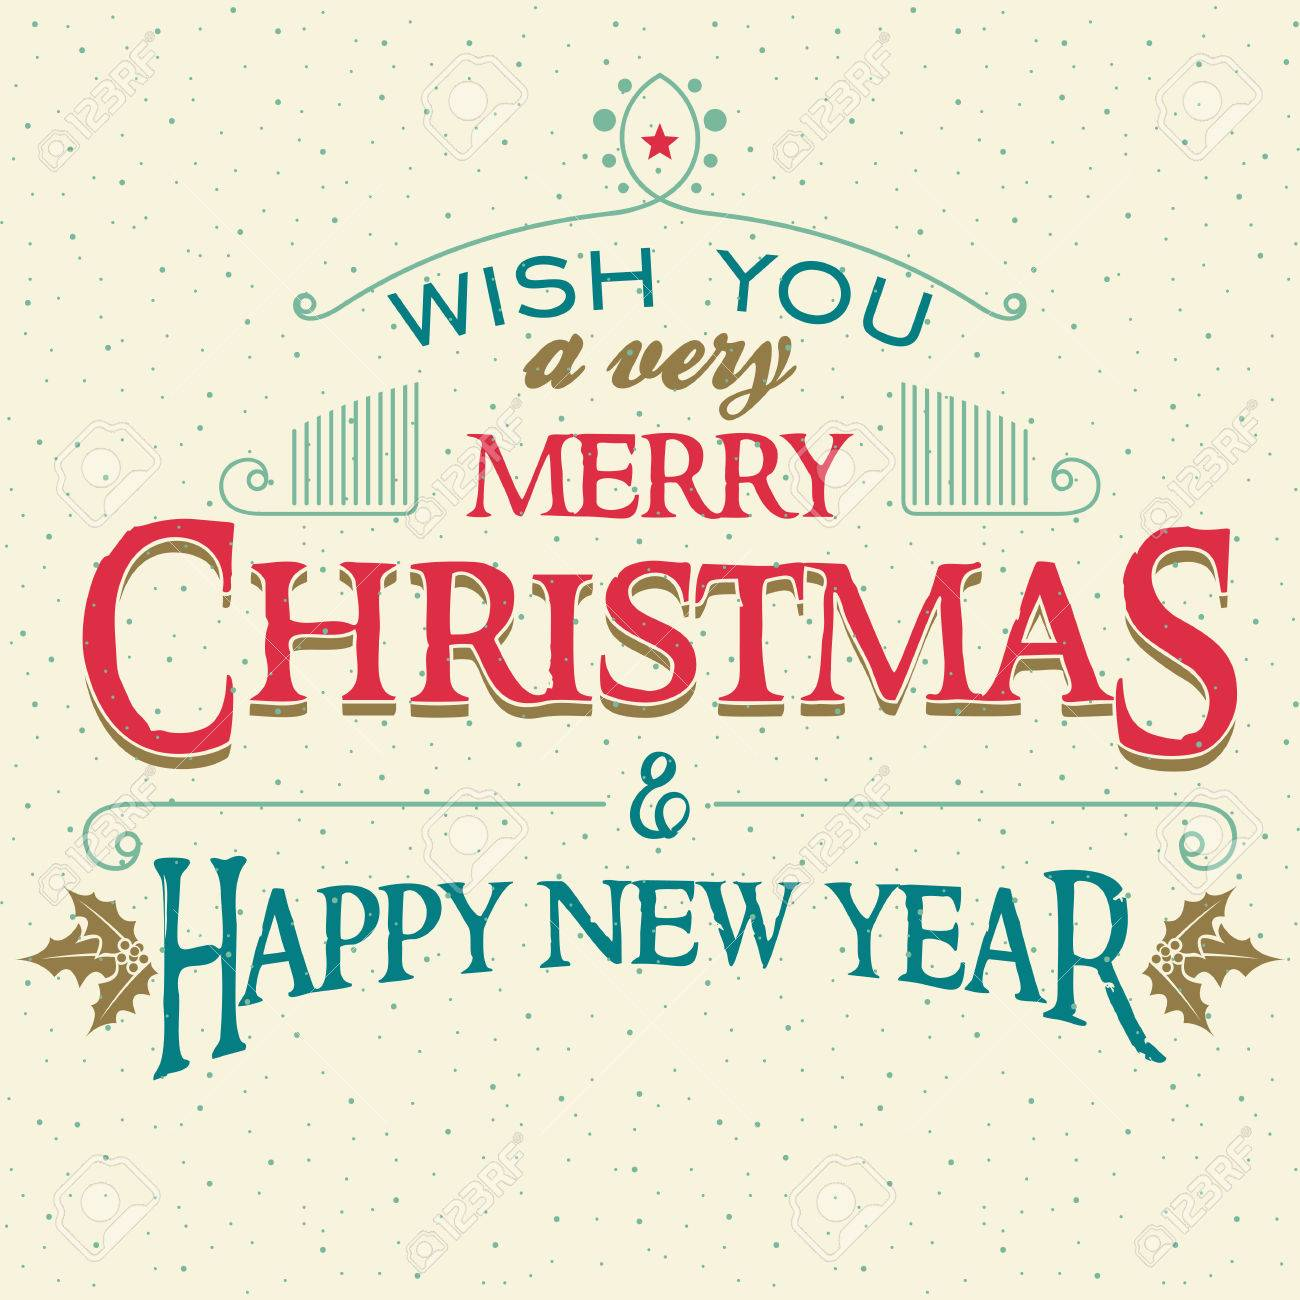 vector wish you a very merry christmas and happy new year typographic cover design of greeting card